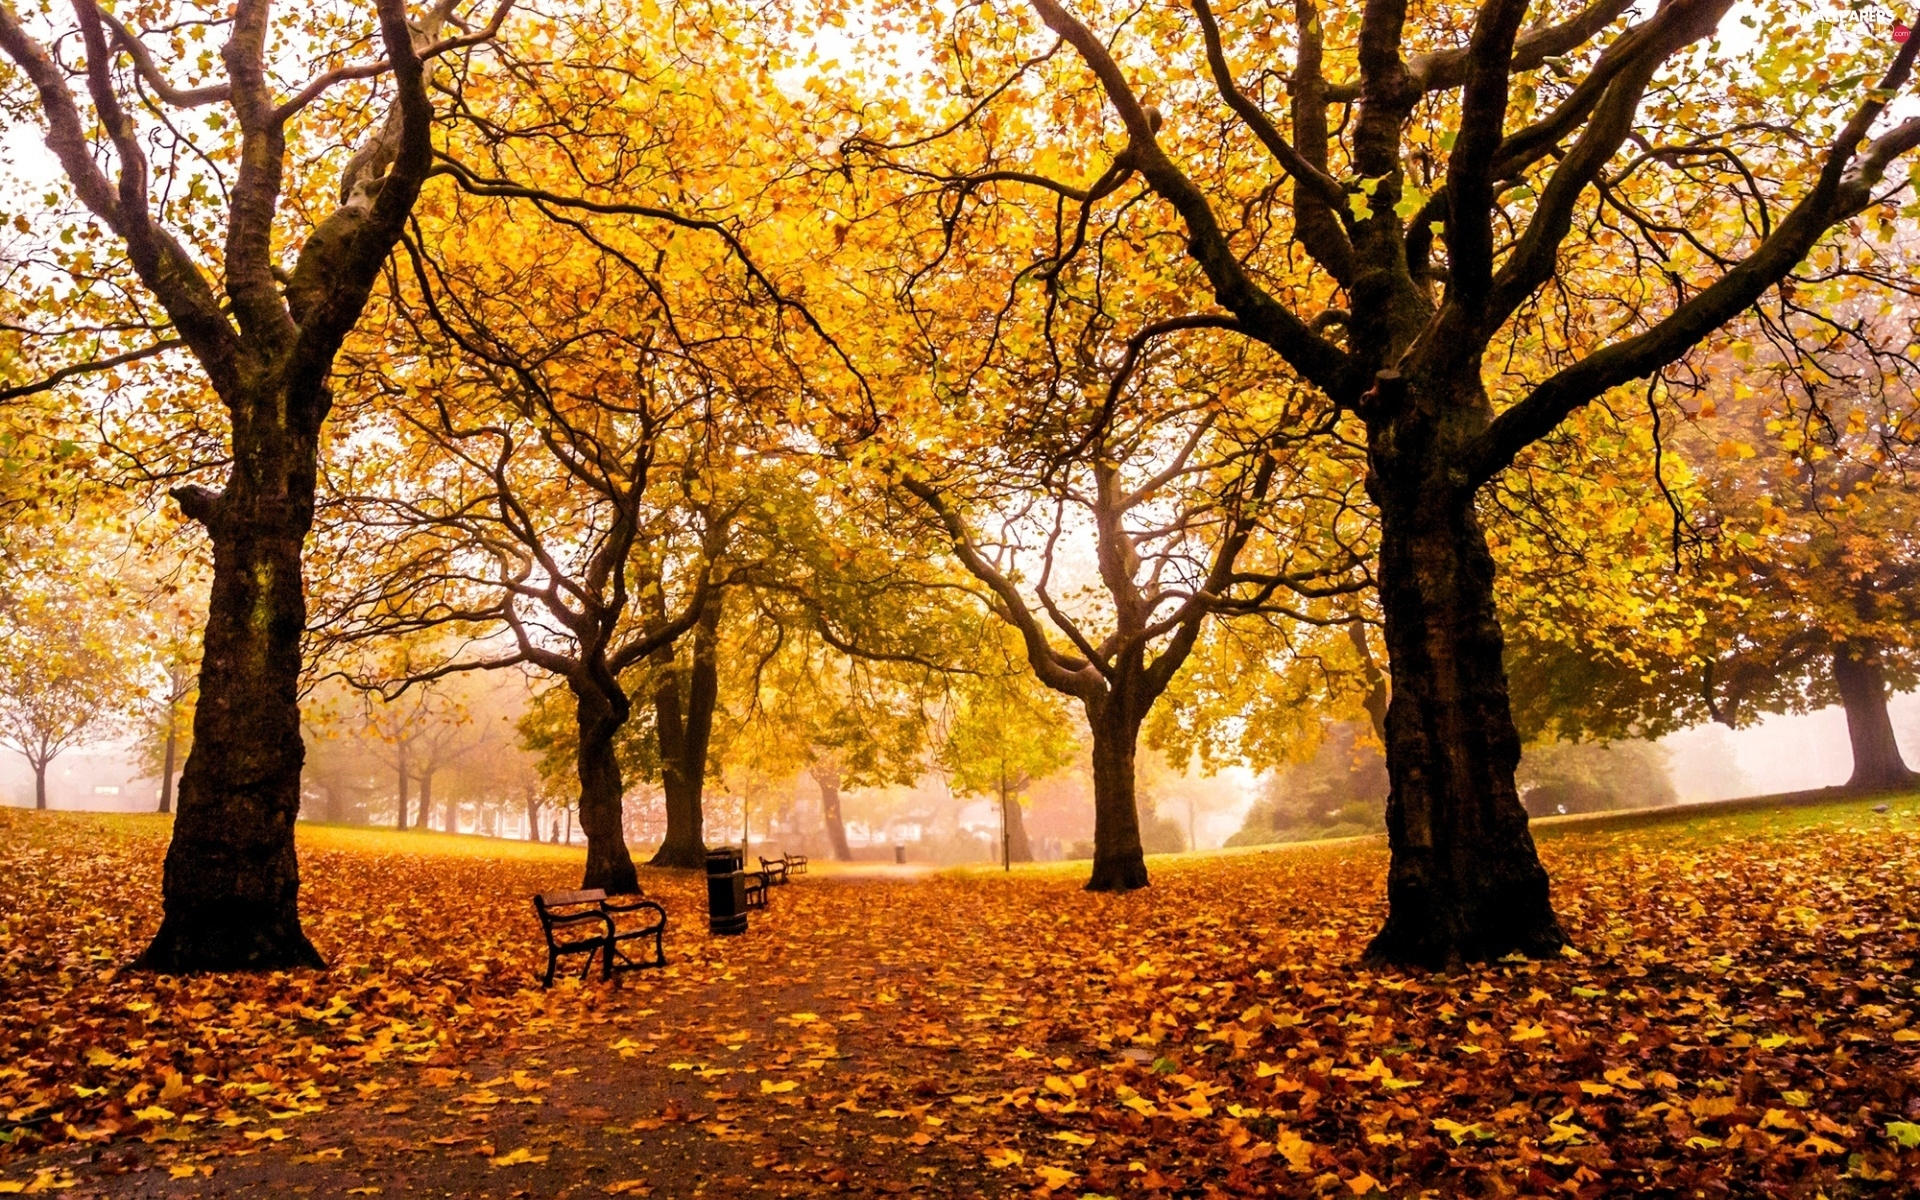 bench, viewes, Leaf, Park, autumn, trees